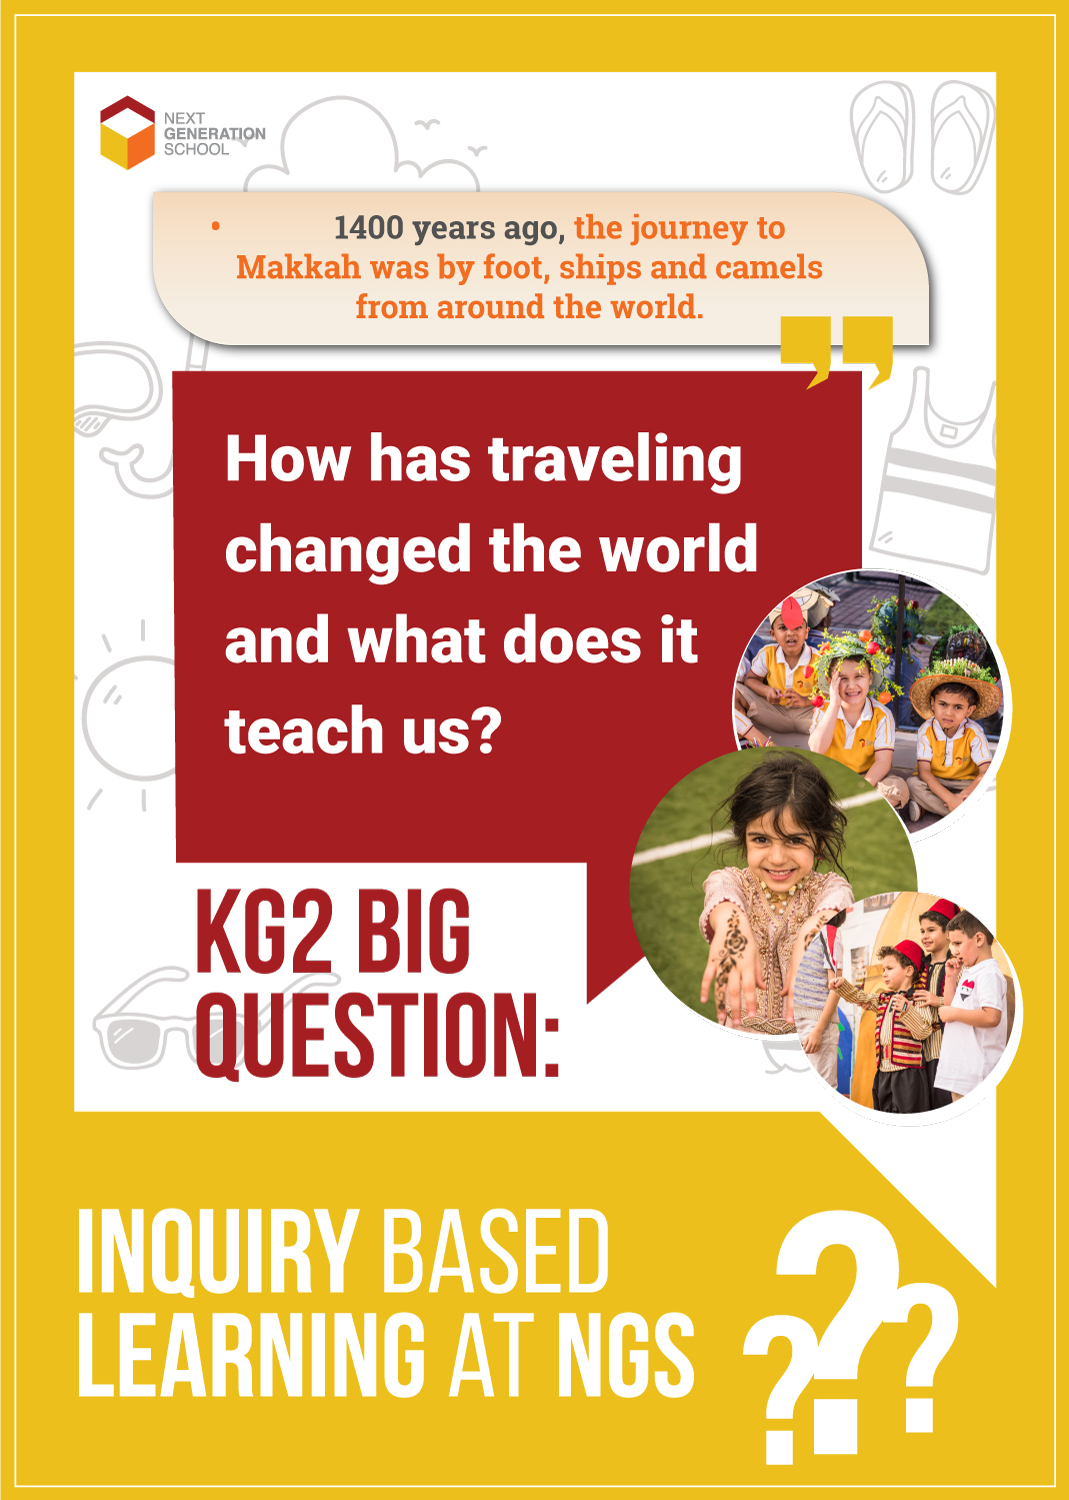 KG2 inquiries